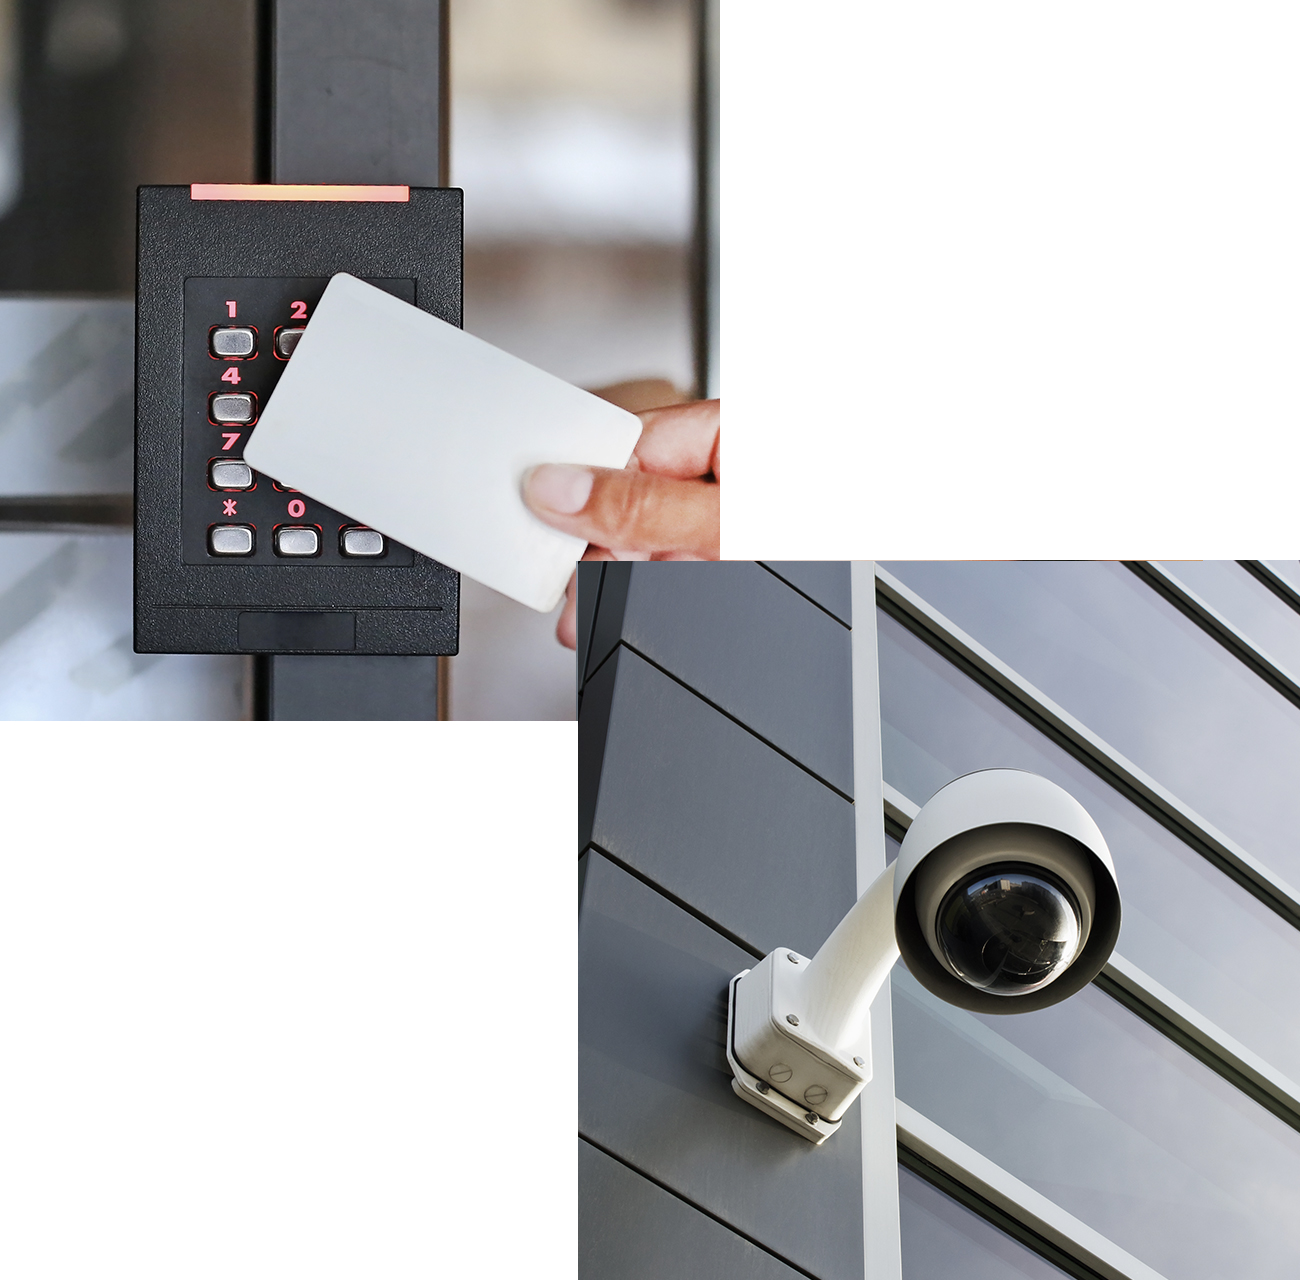 Keycard entry system and security camera outside building